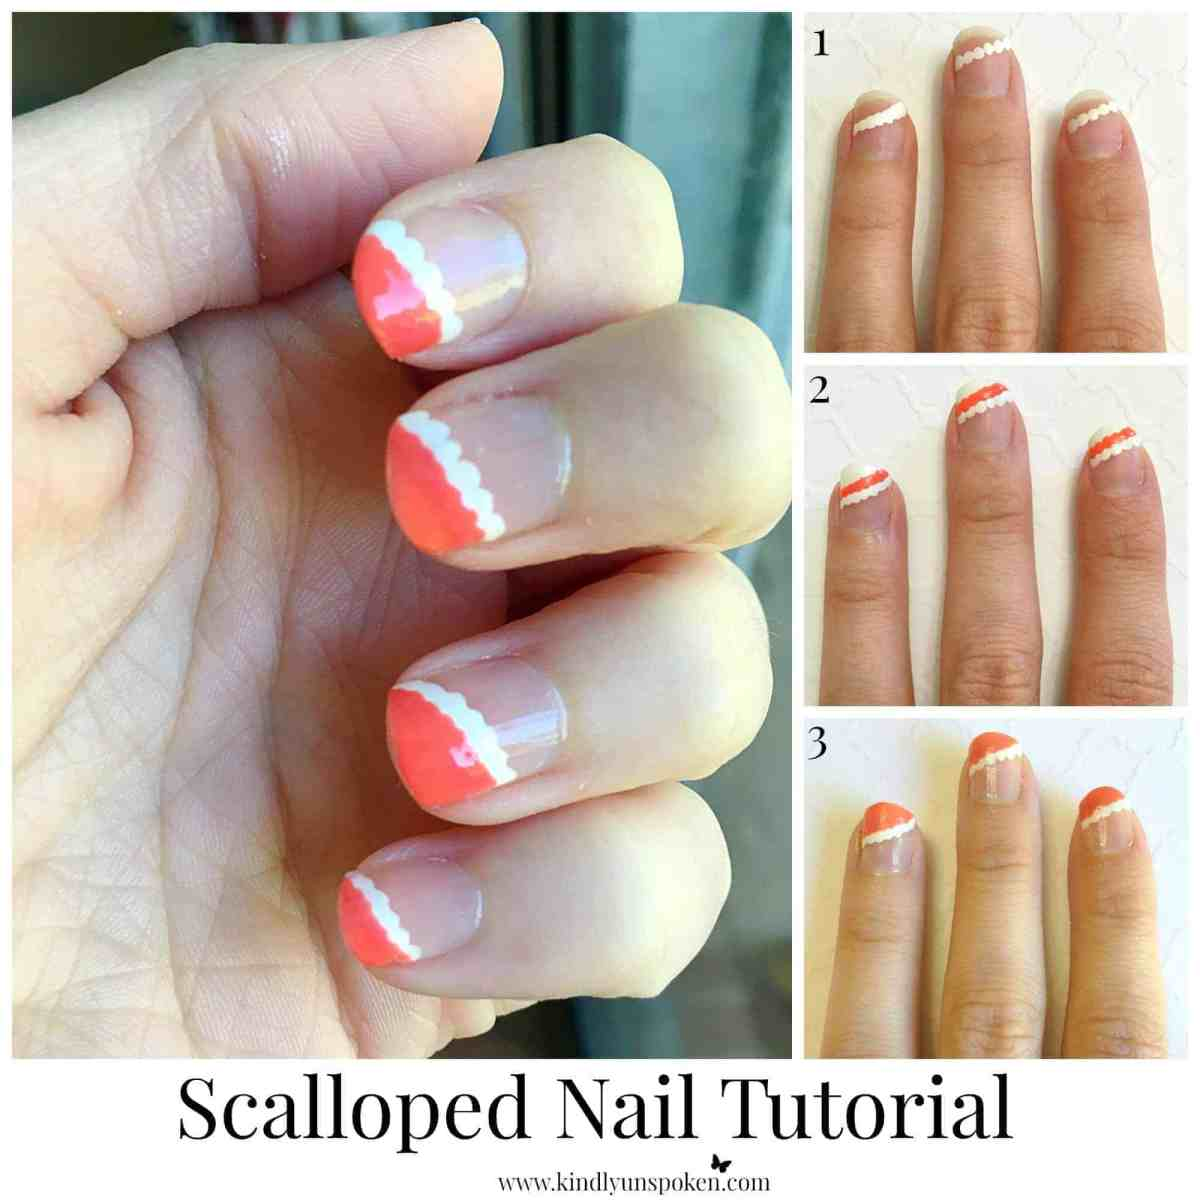 Scalloped Nail Tutorial